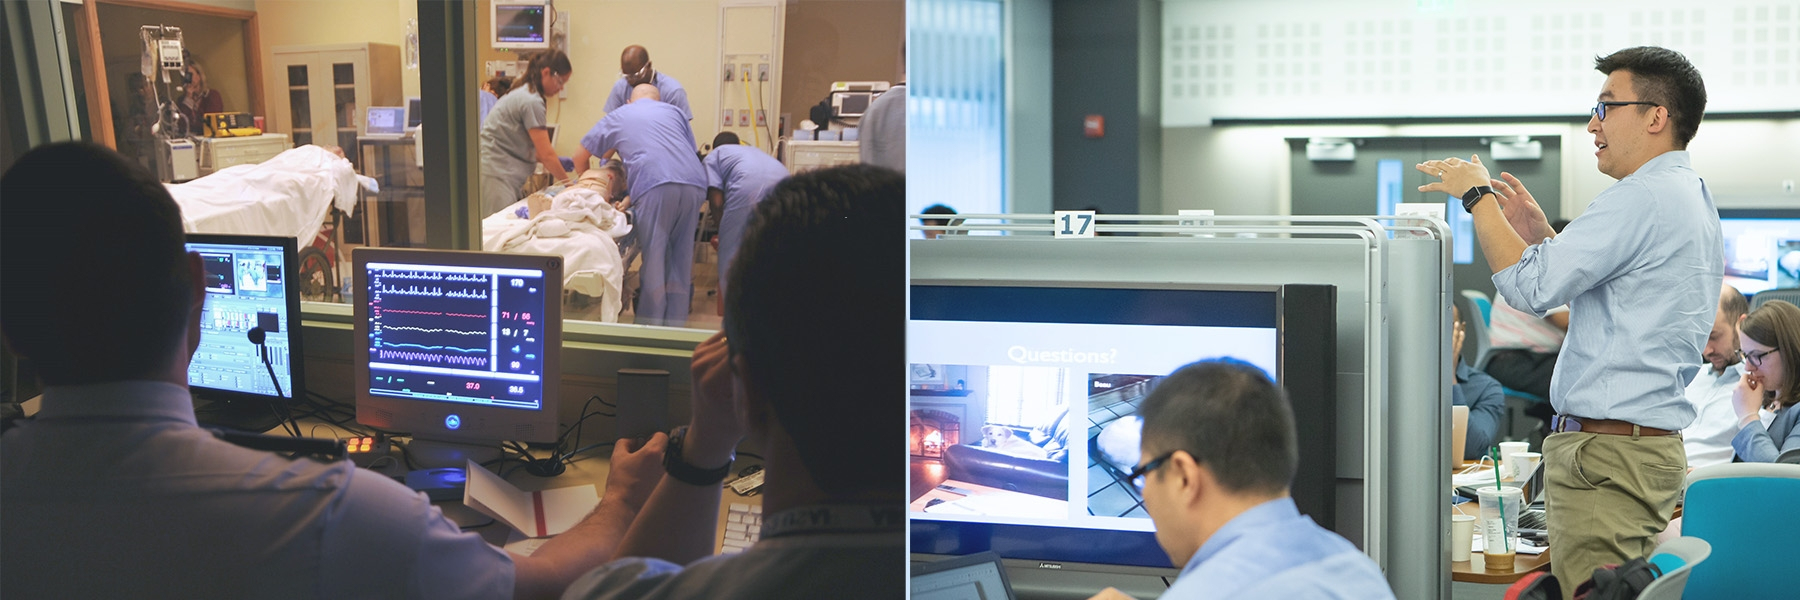 two photos of simulation, one a classroom with computers and one of a patient care room